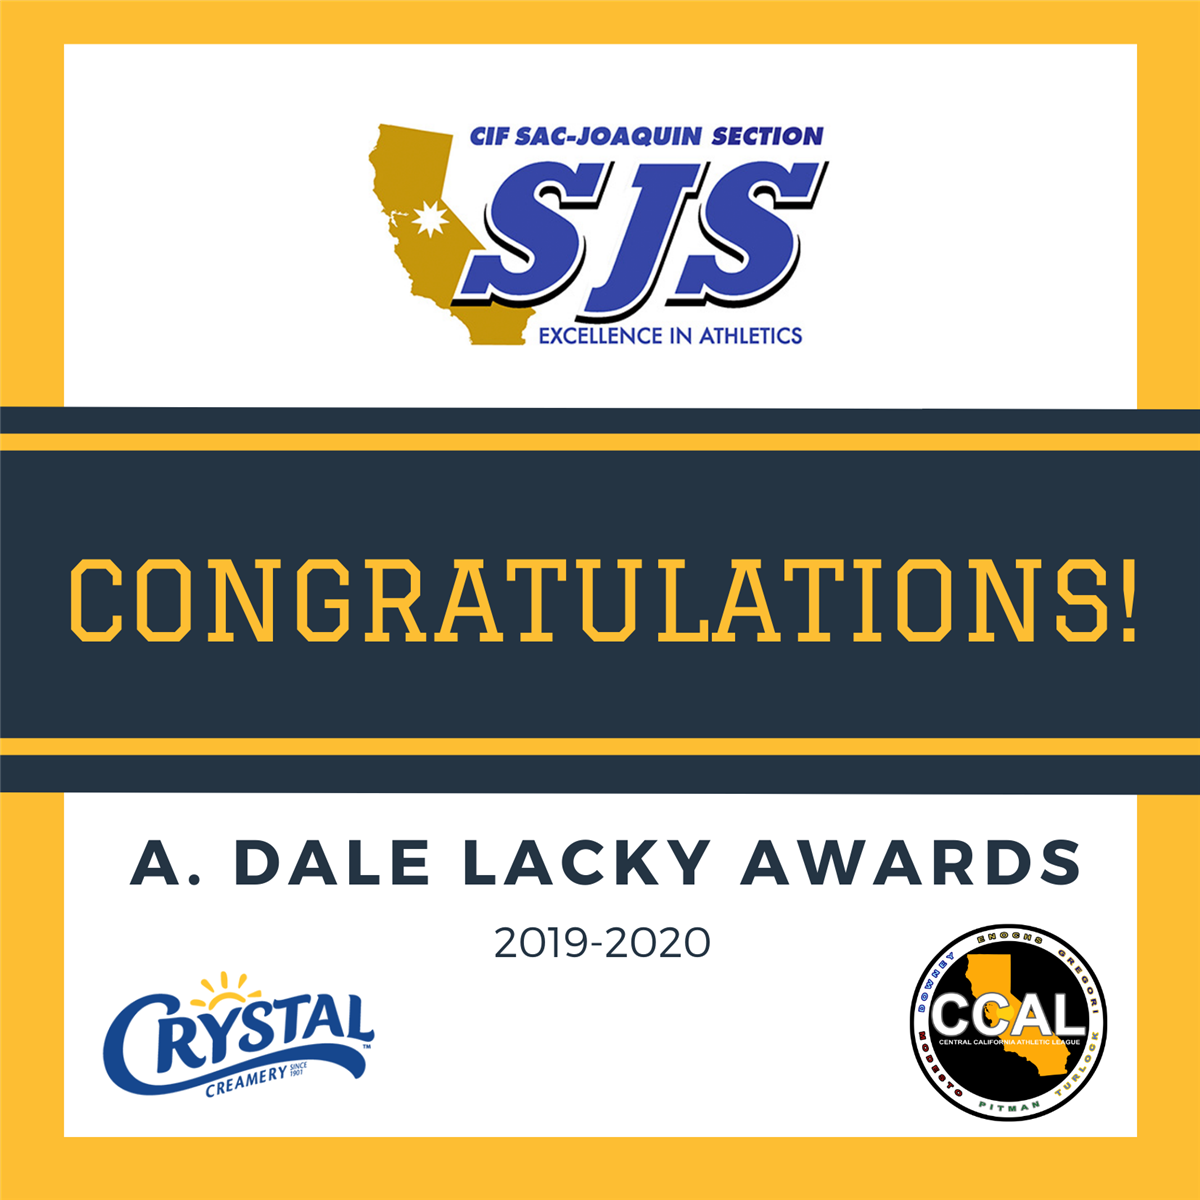 A. Dale Lacky Awards